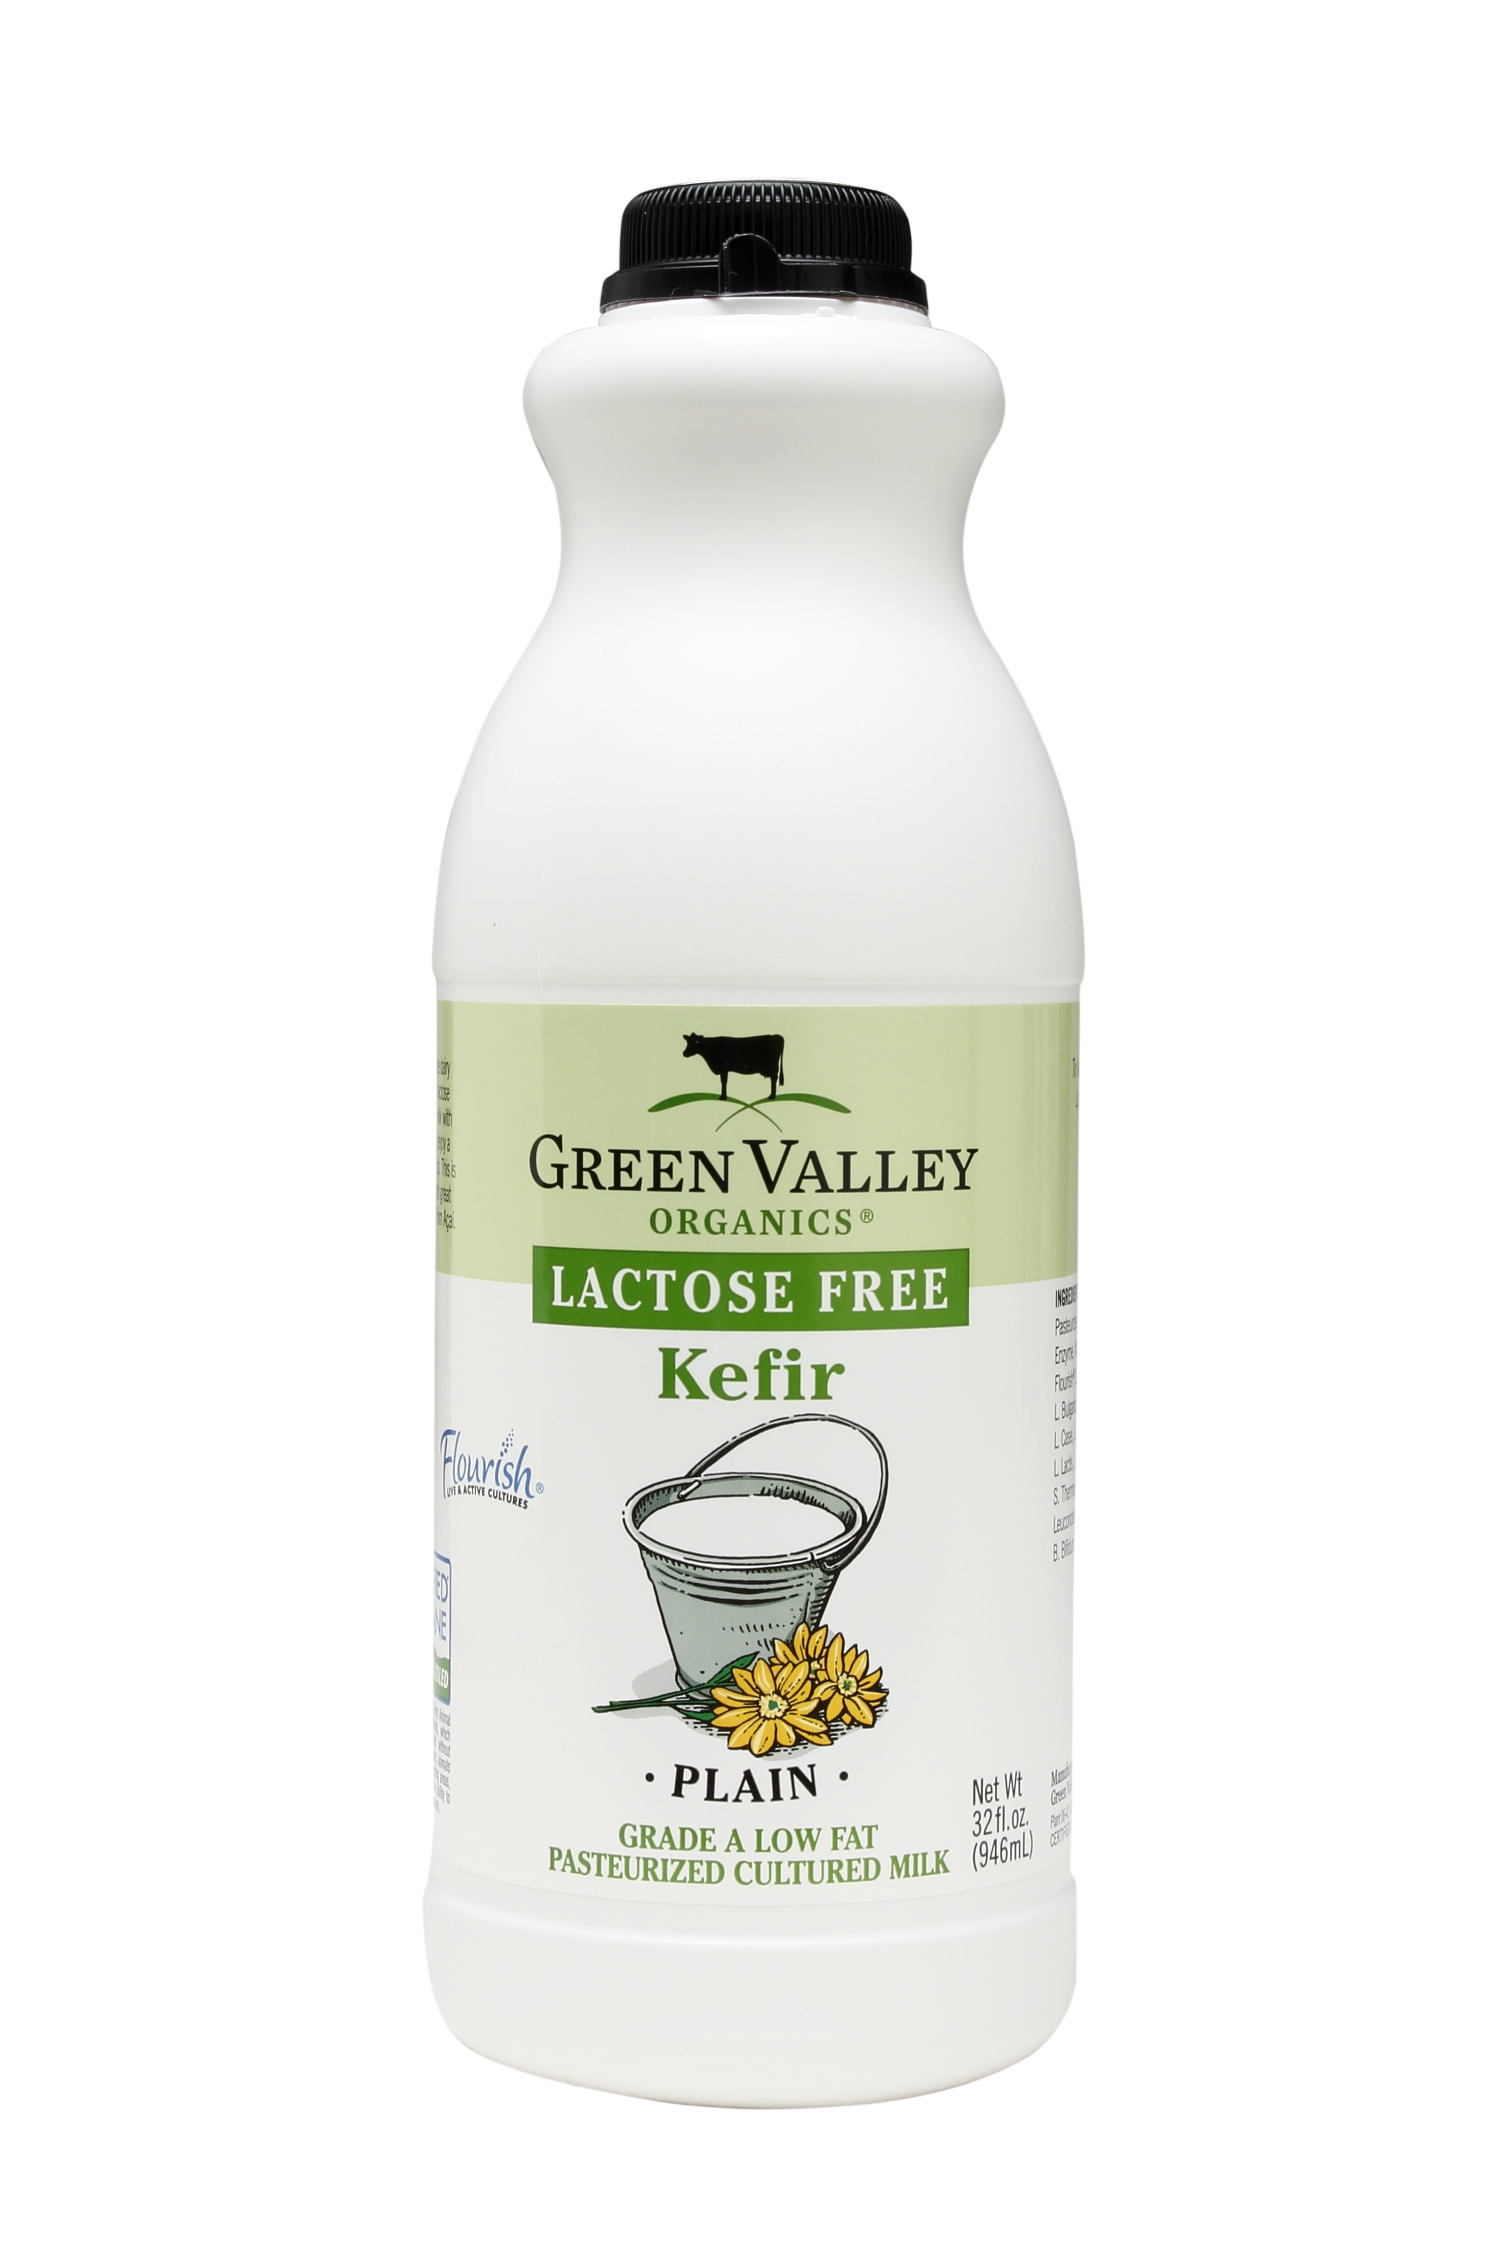 Green Valley Organics lactose-free plain kefir